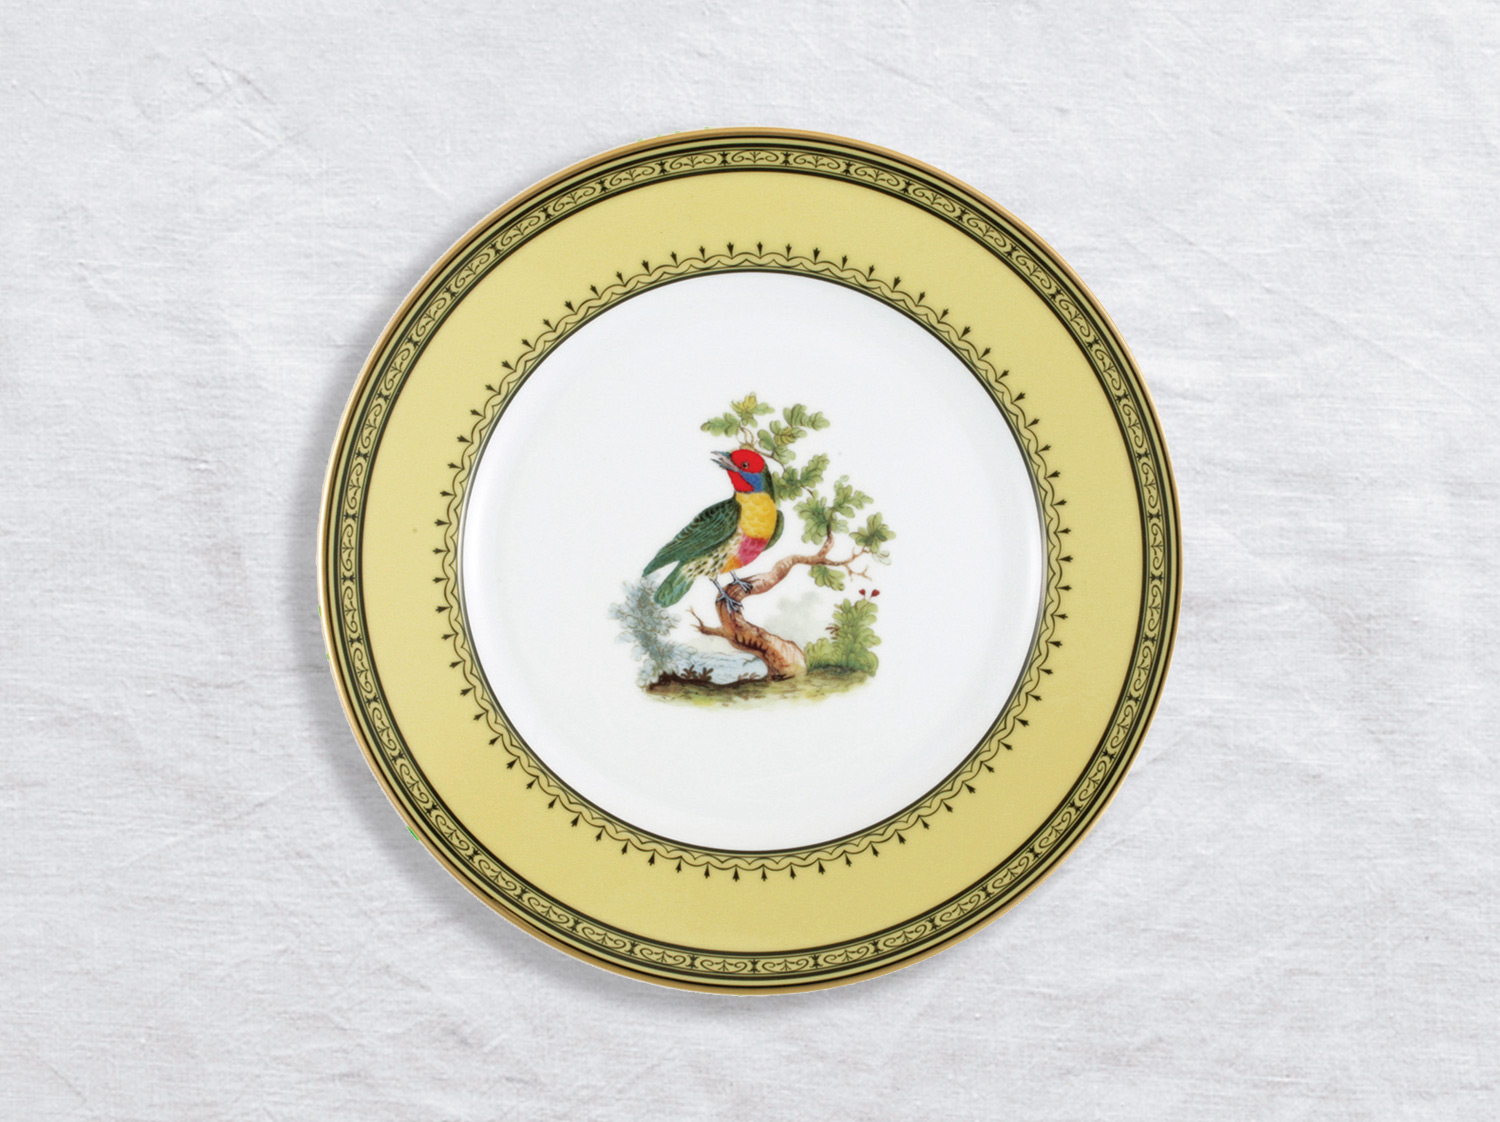 Assiette à dîner Barbu de Maynas 26 cm en porcelaine de la collection Barbu de maynas Bernardaud